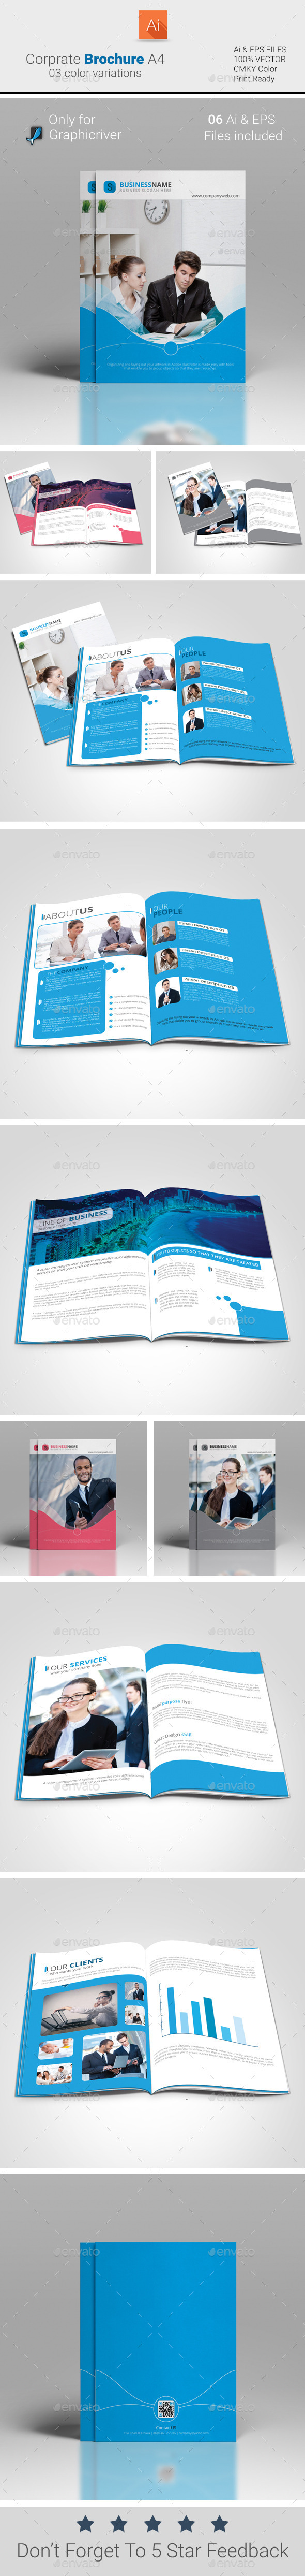 GraphicRiver Corporate Brochure A4 9343648